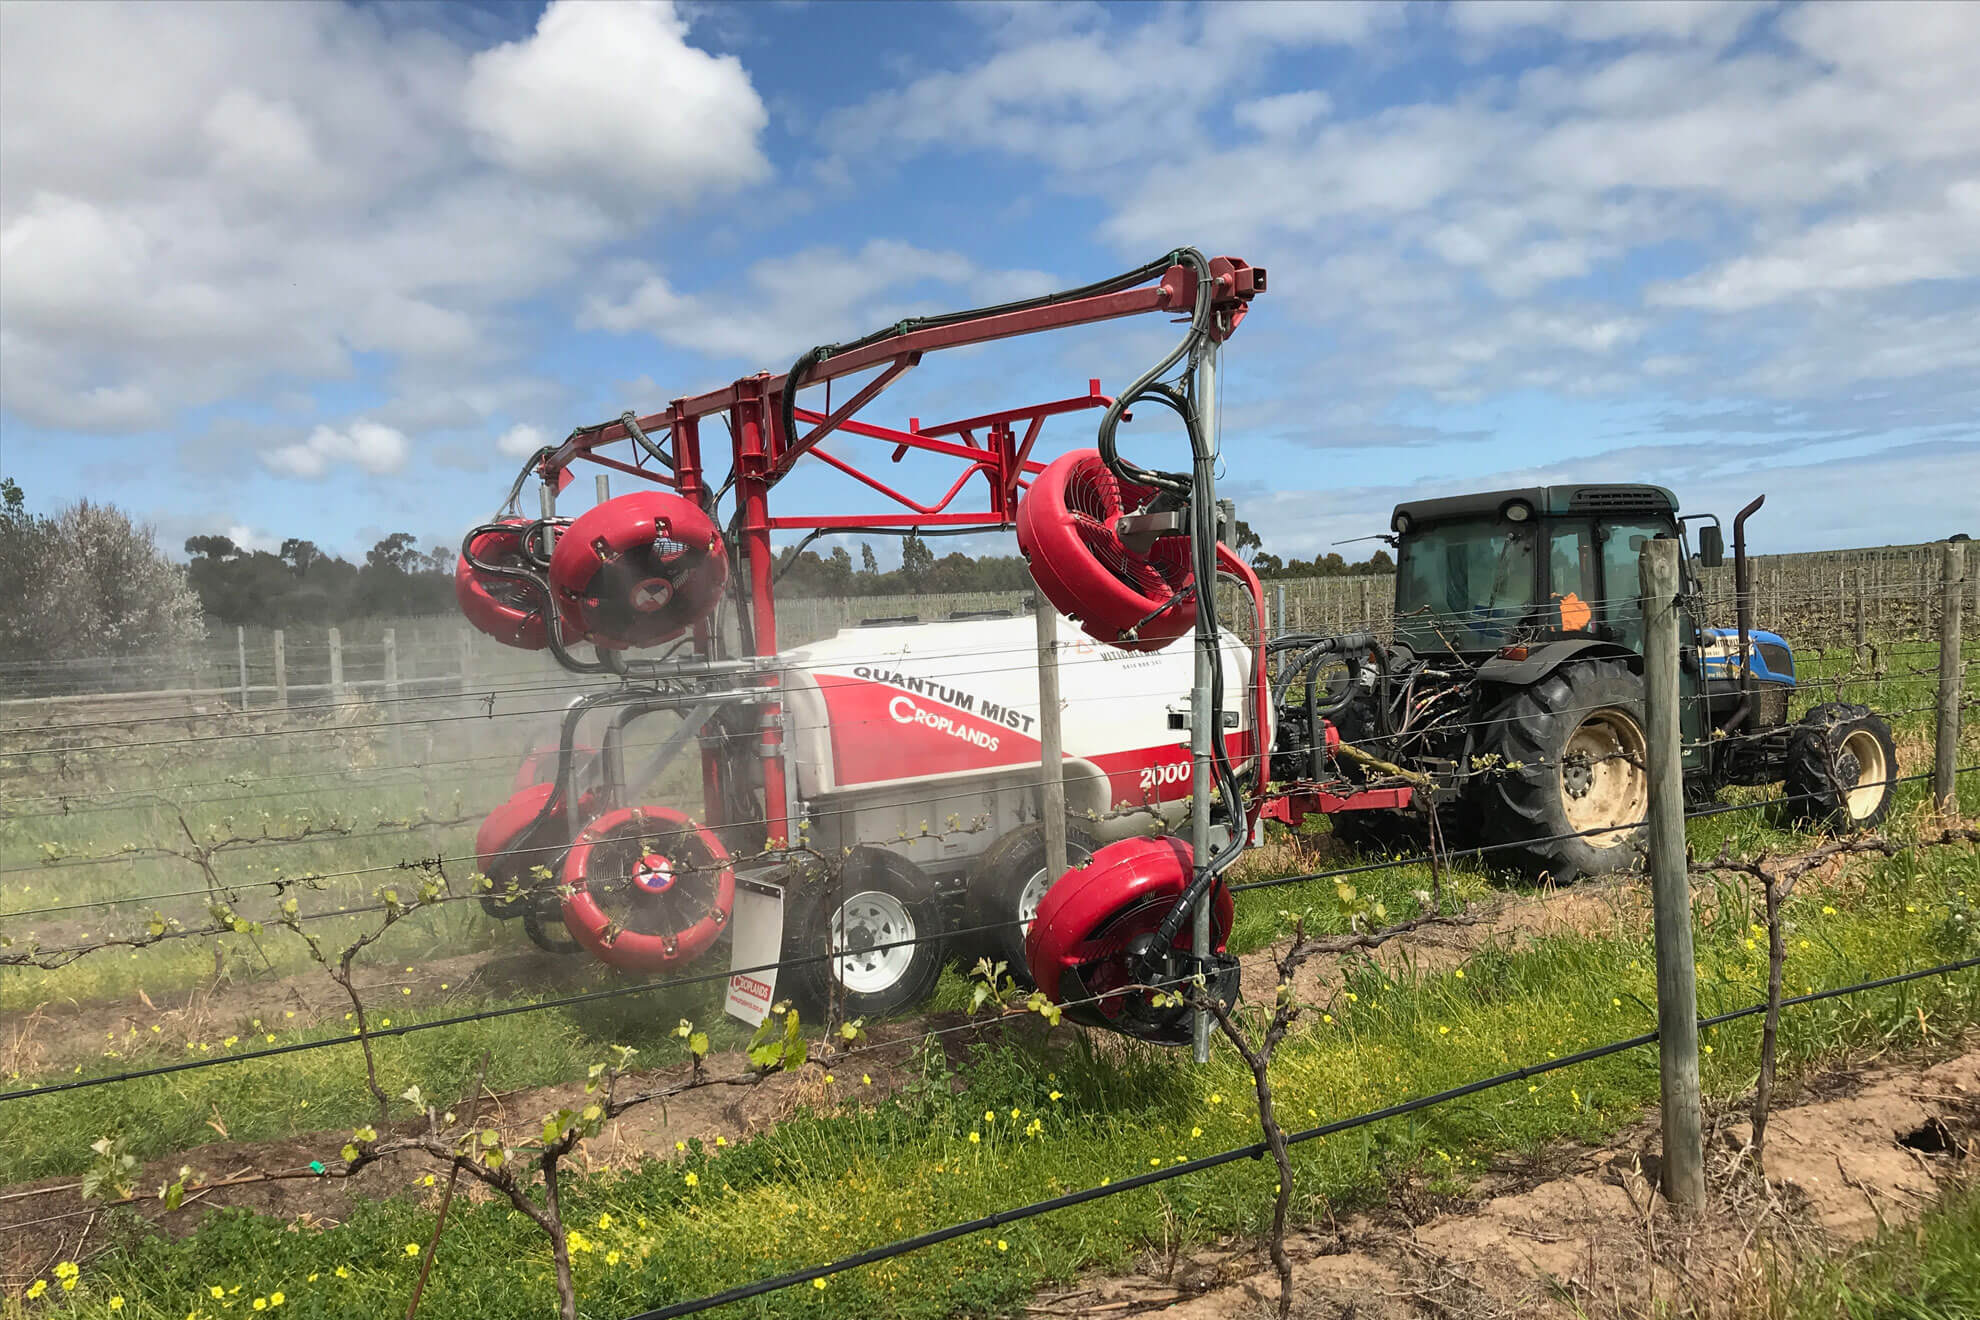 Fungicide used for vineyard protection